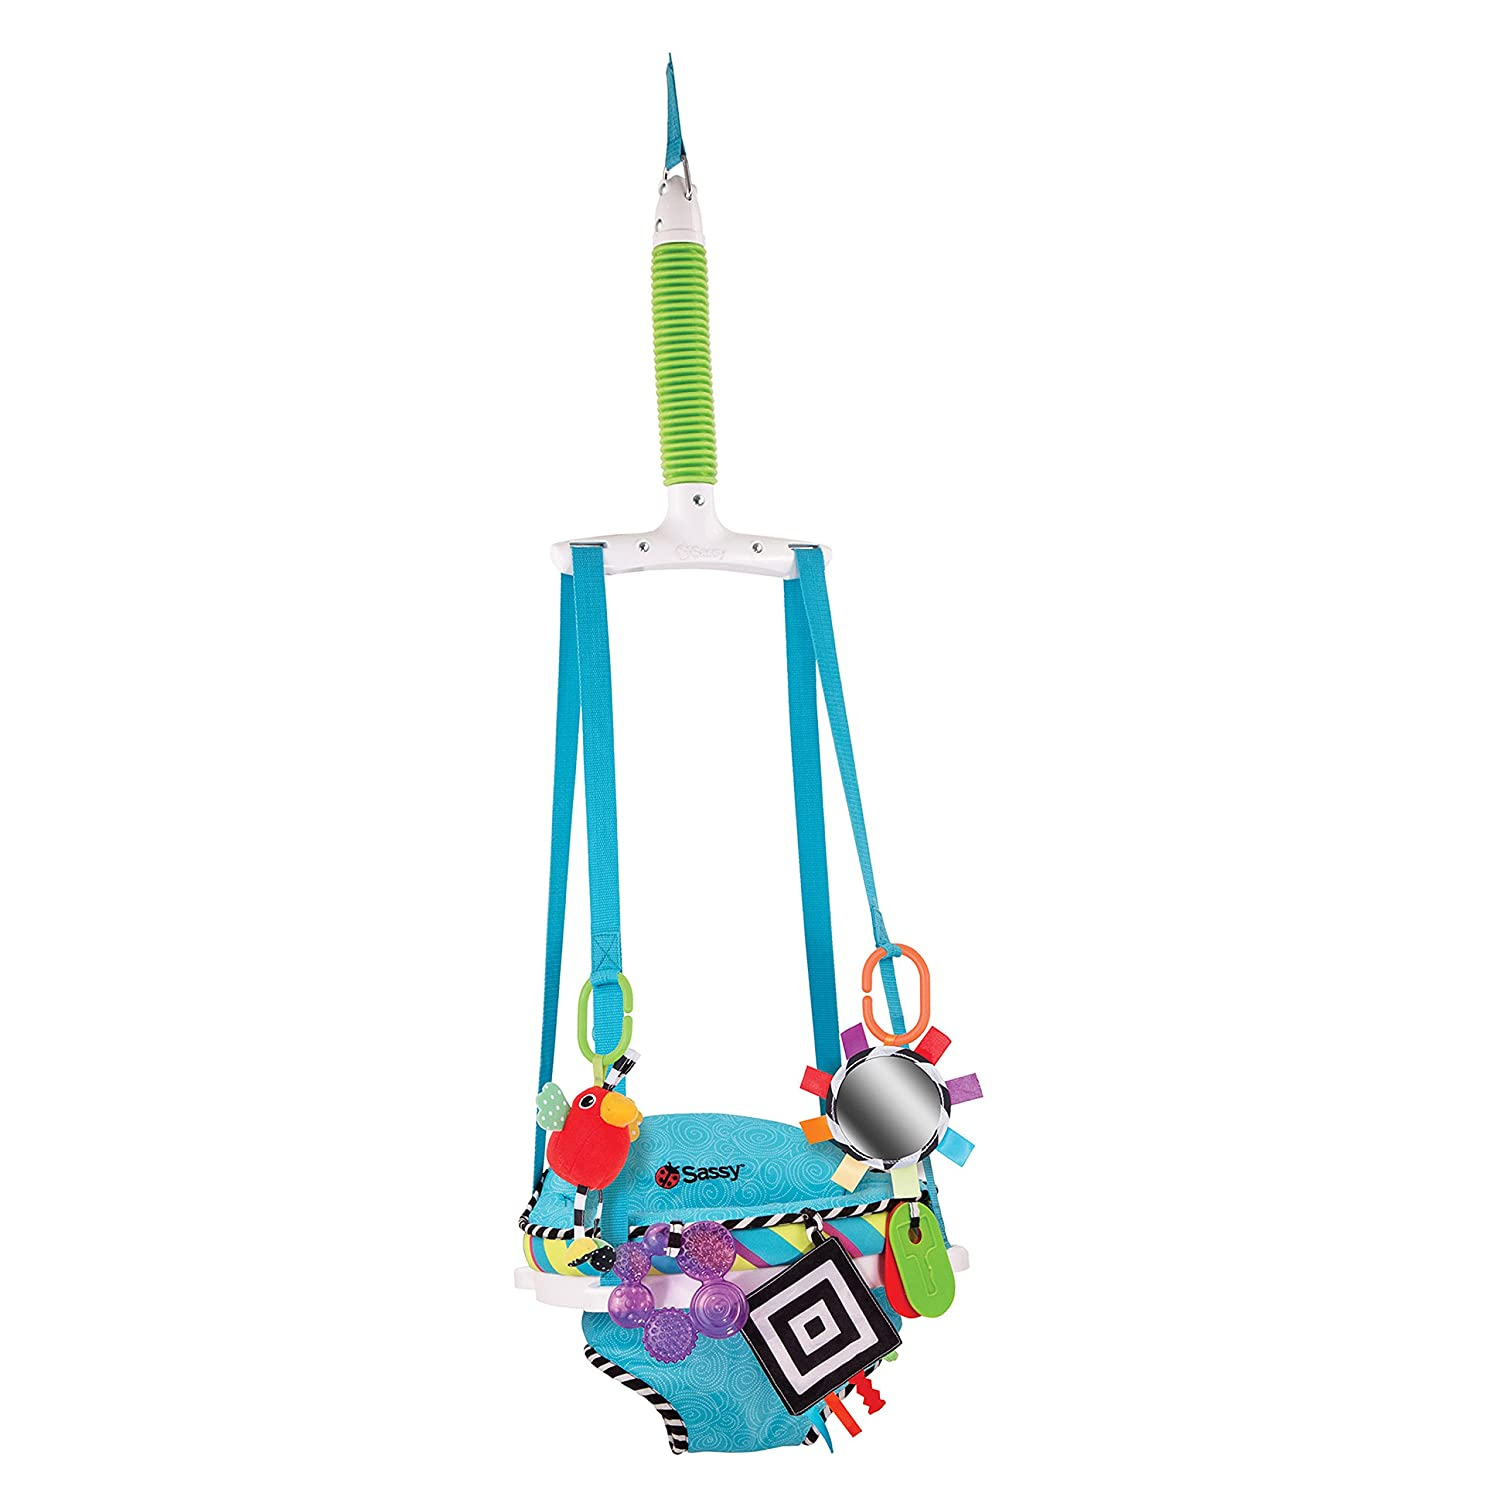 Sassy Inspire the Senses Doorway Jumper with Removable Toys Hamco Inc 70025